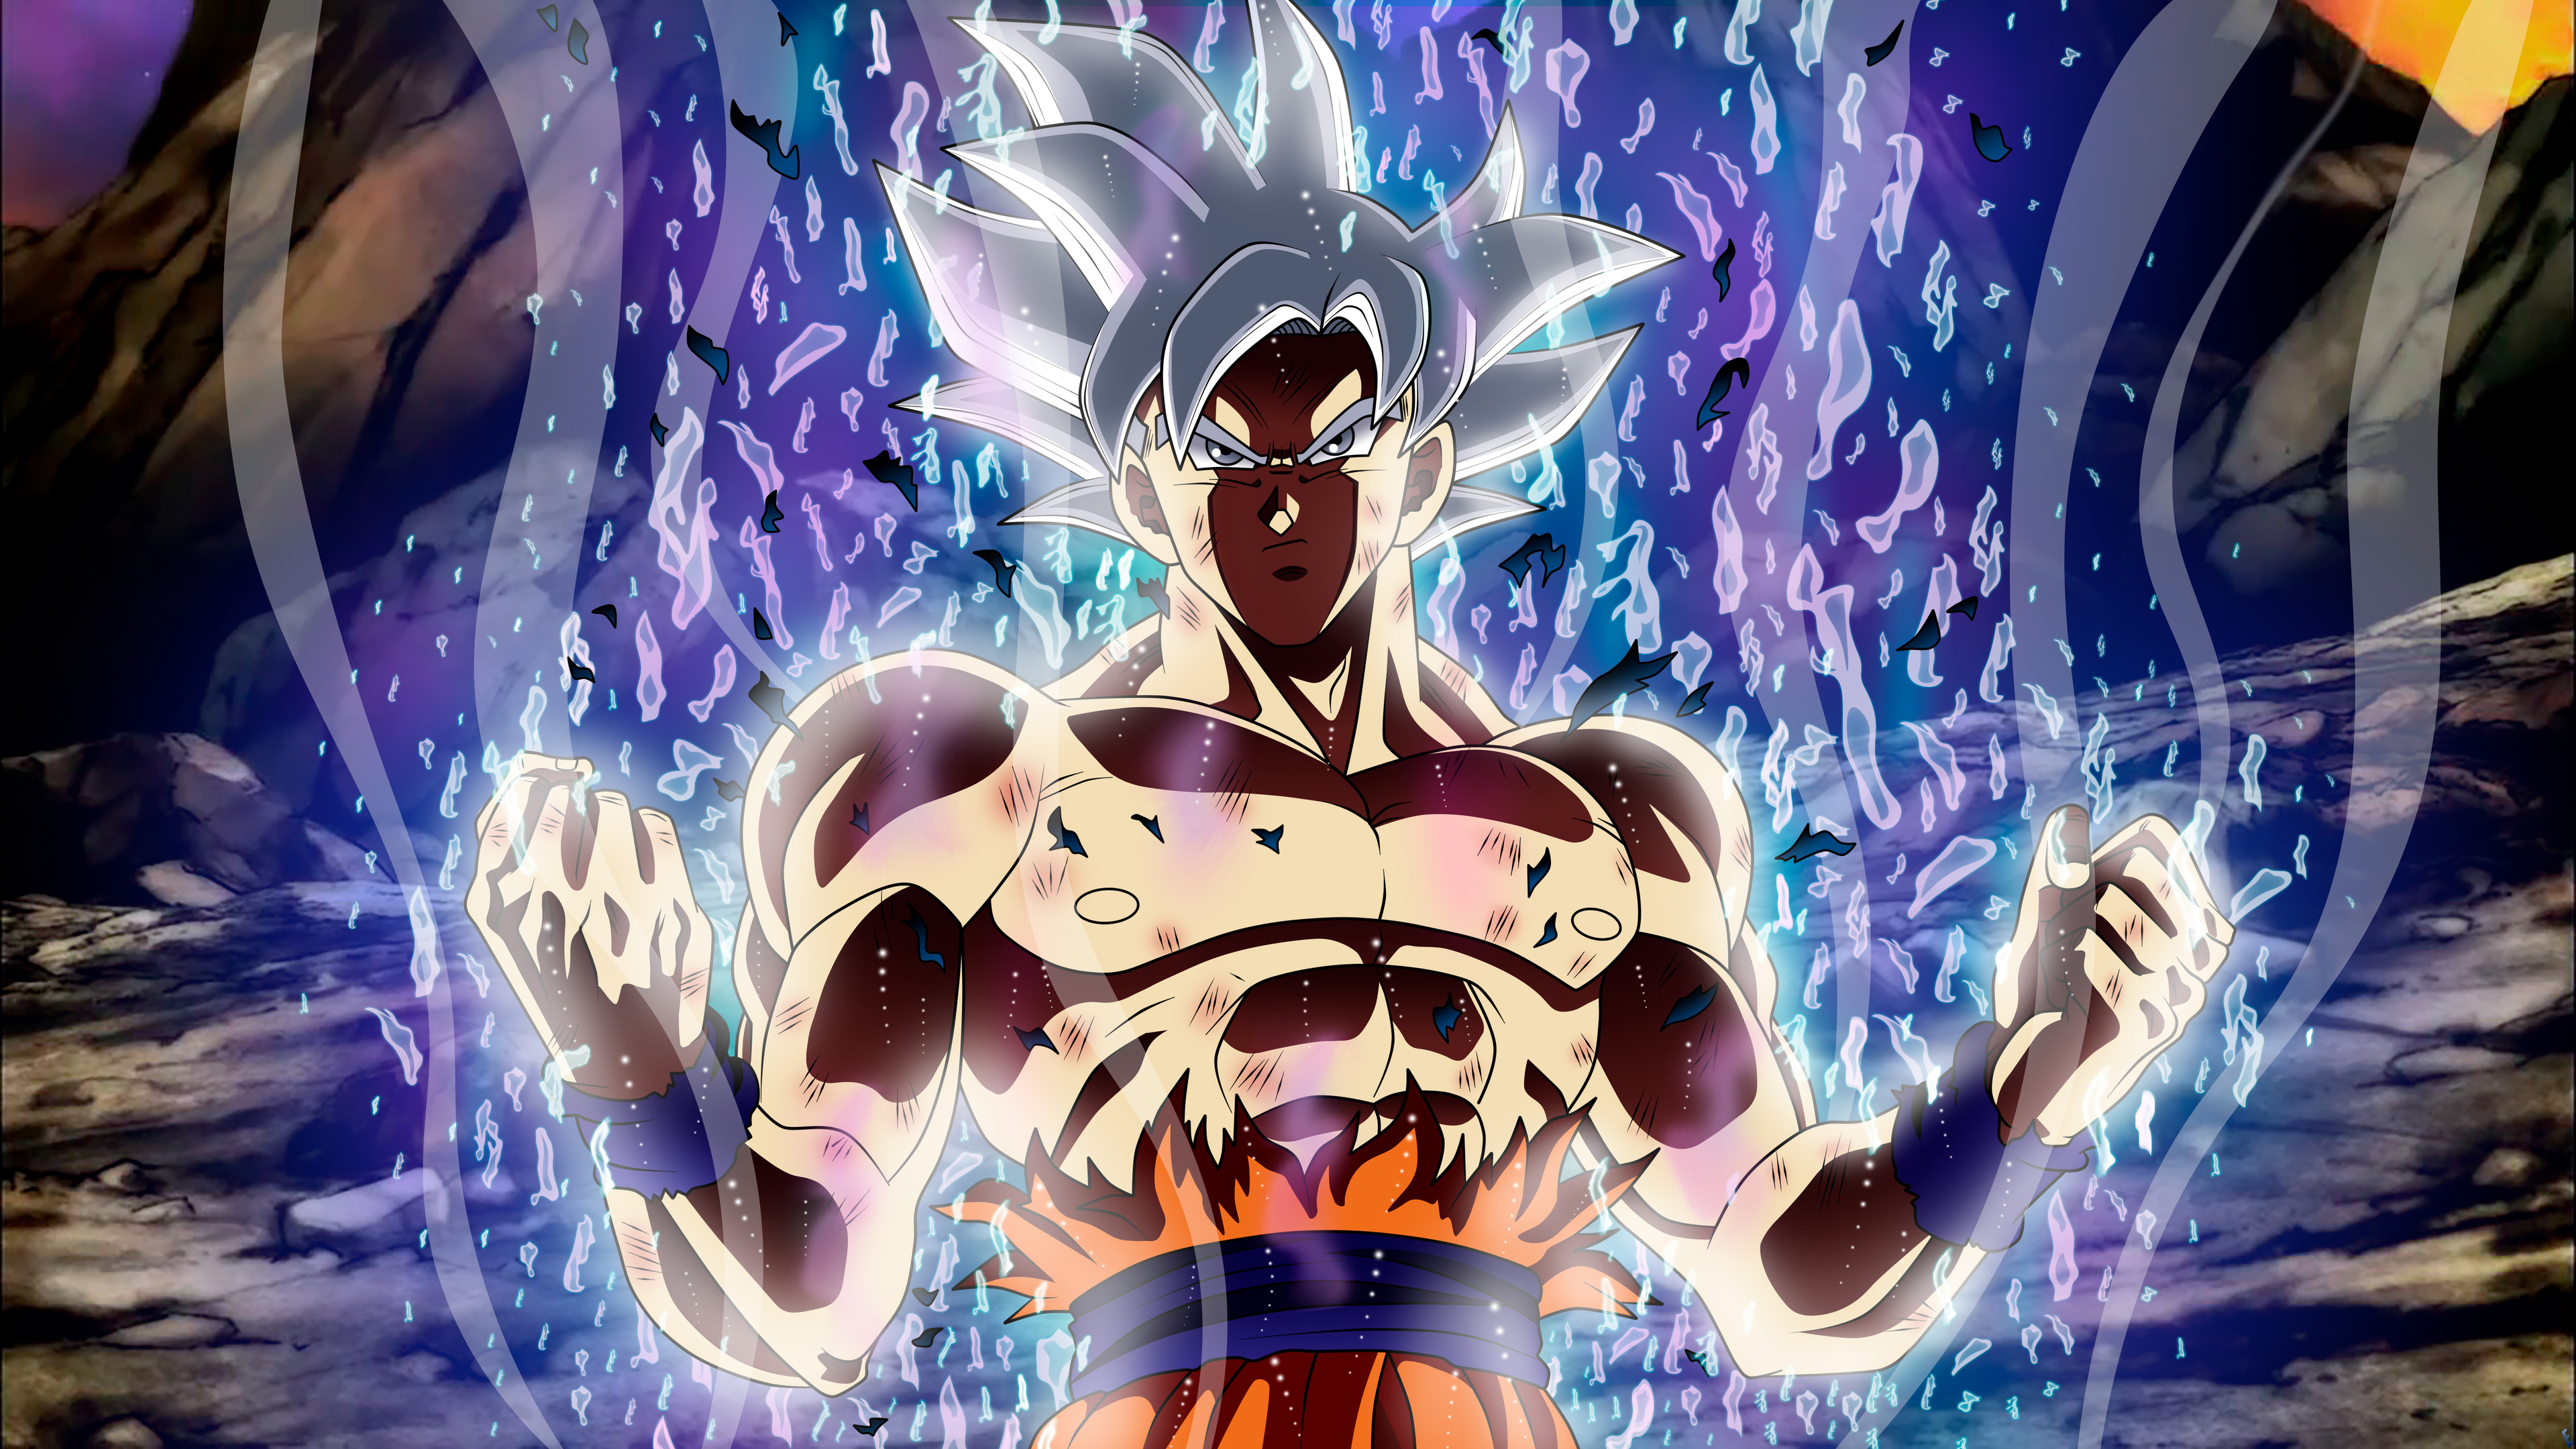 ultra-instinct-goku-dragon-ball-5k-4p.jpg